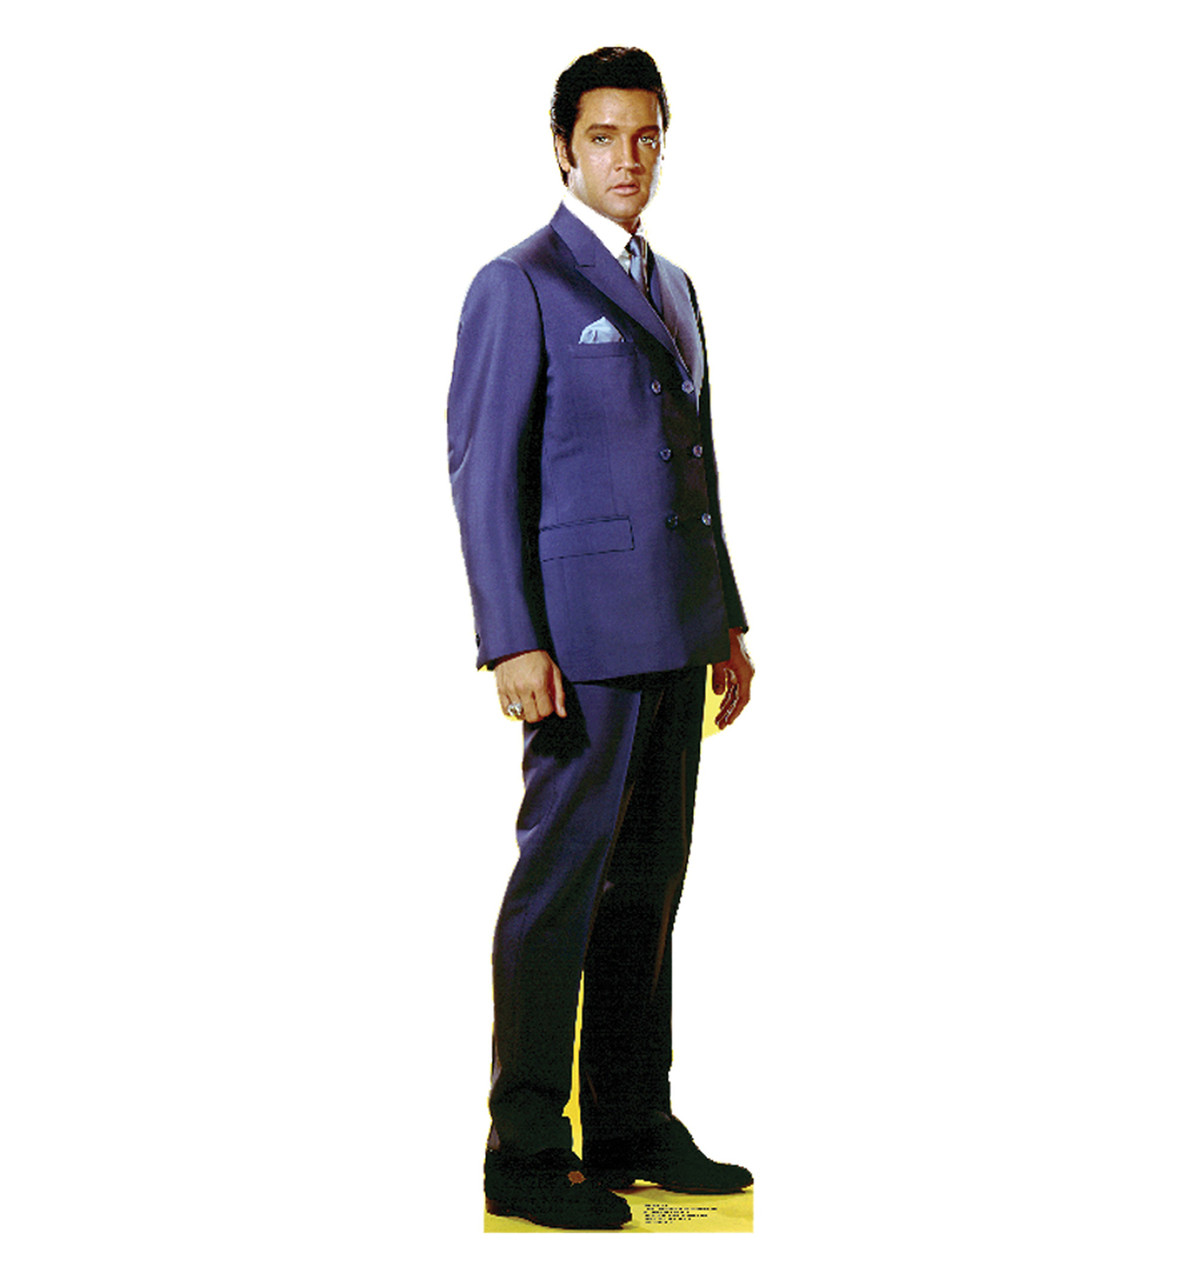 Elvis Blue Jacket - Cardboard Cutout 842